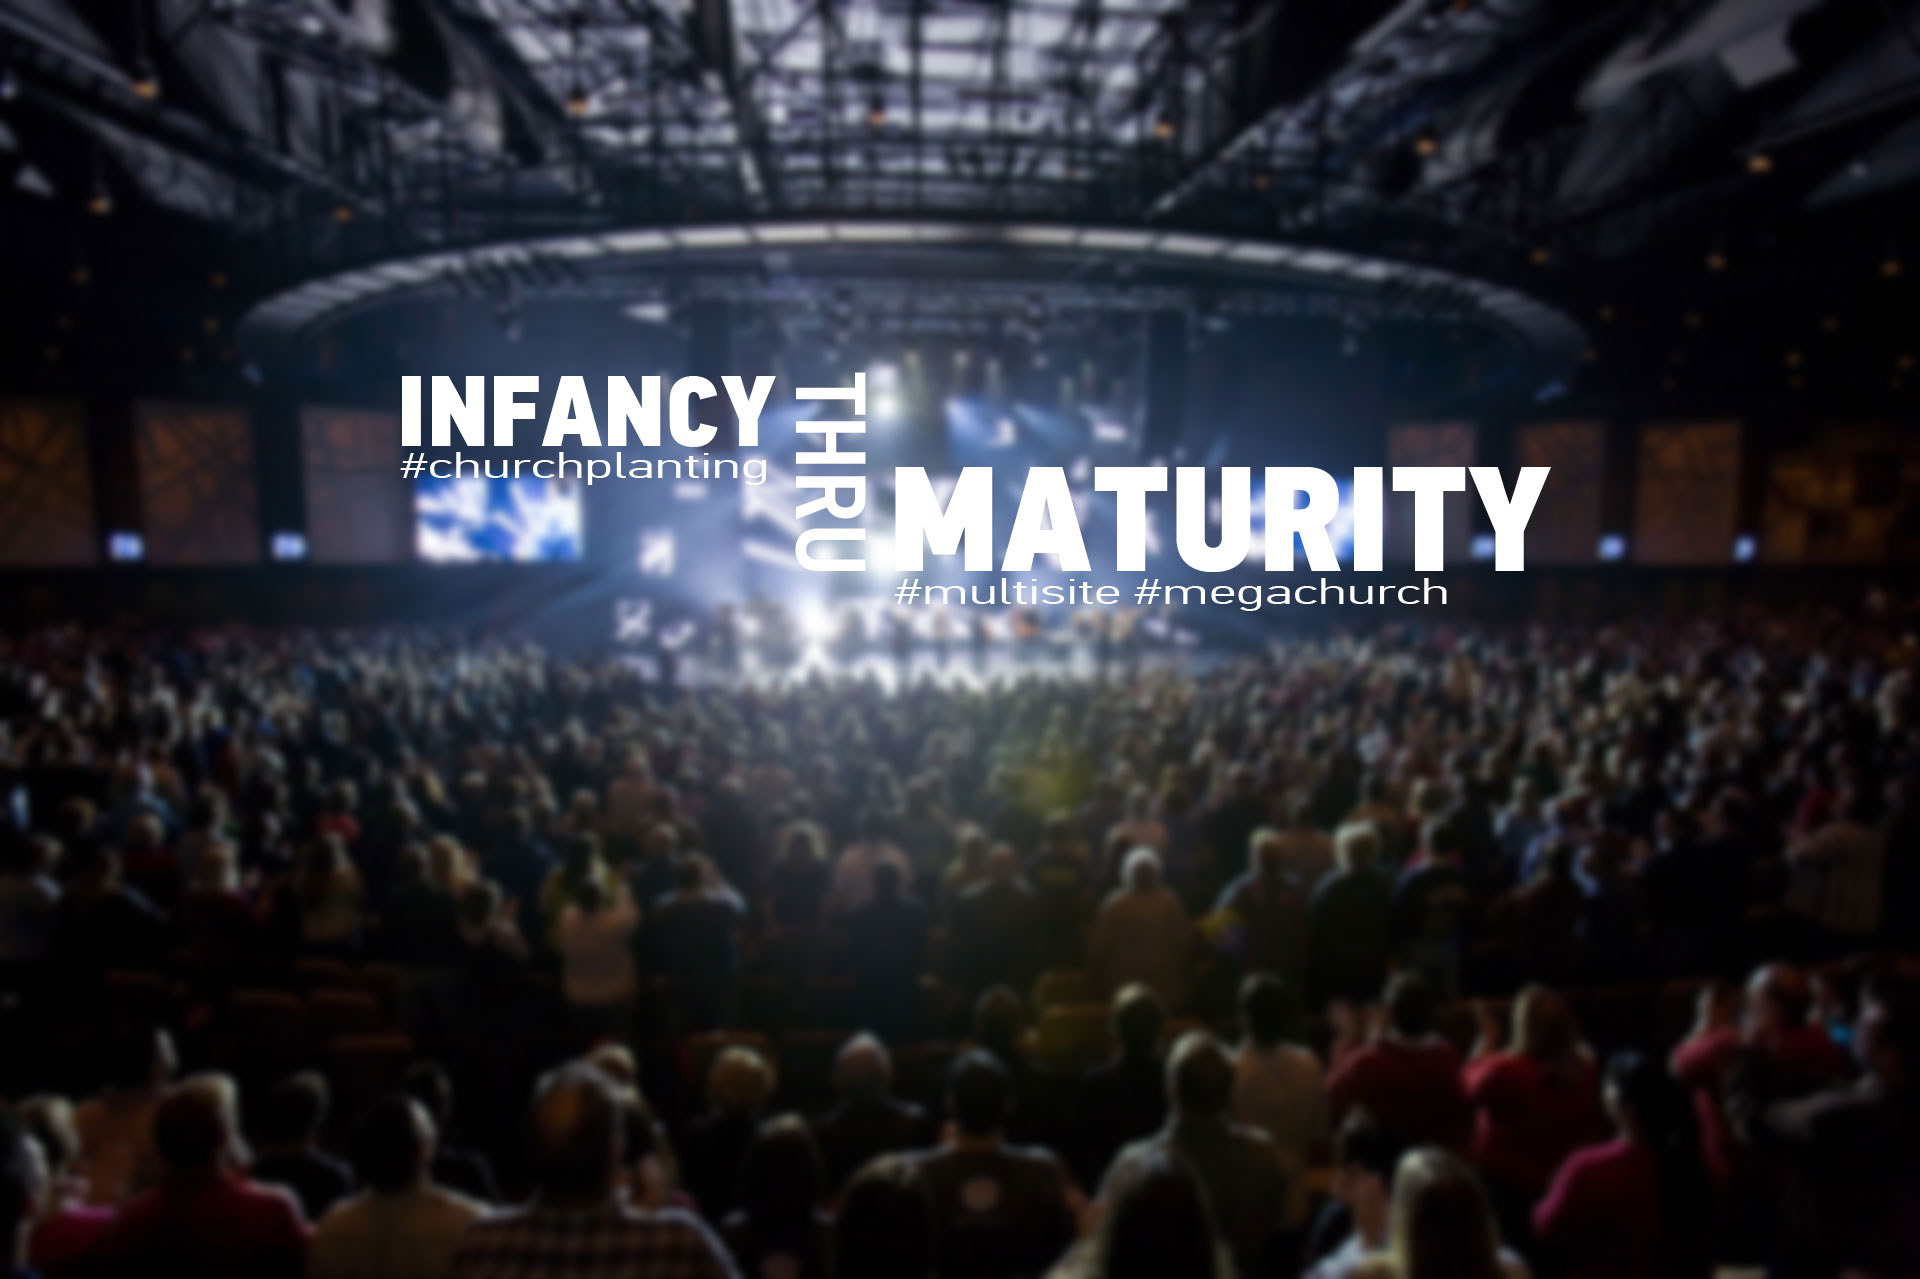 infancy thru maturity - serving the technical needs of the church